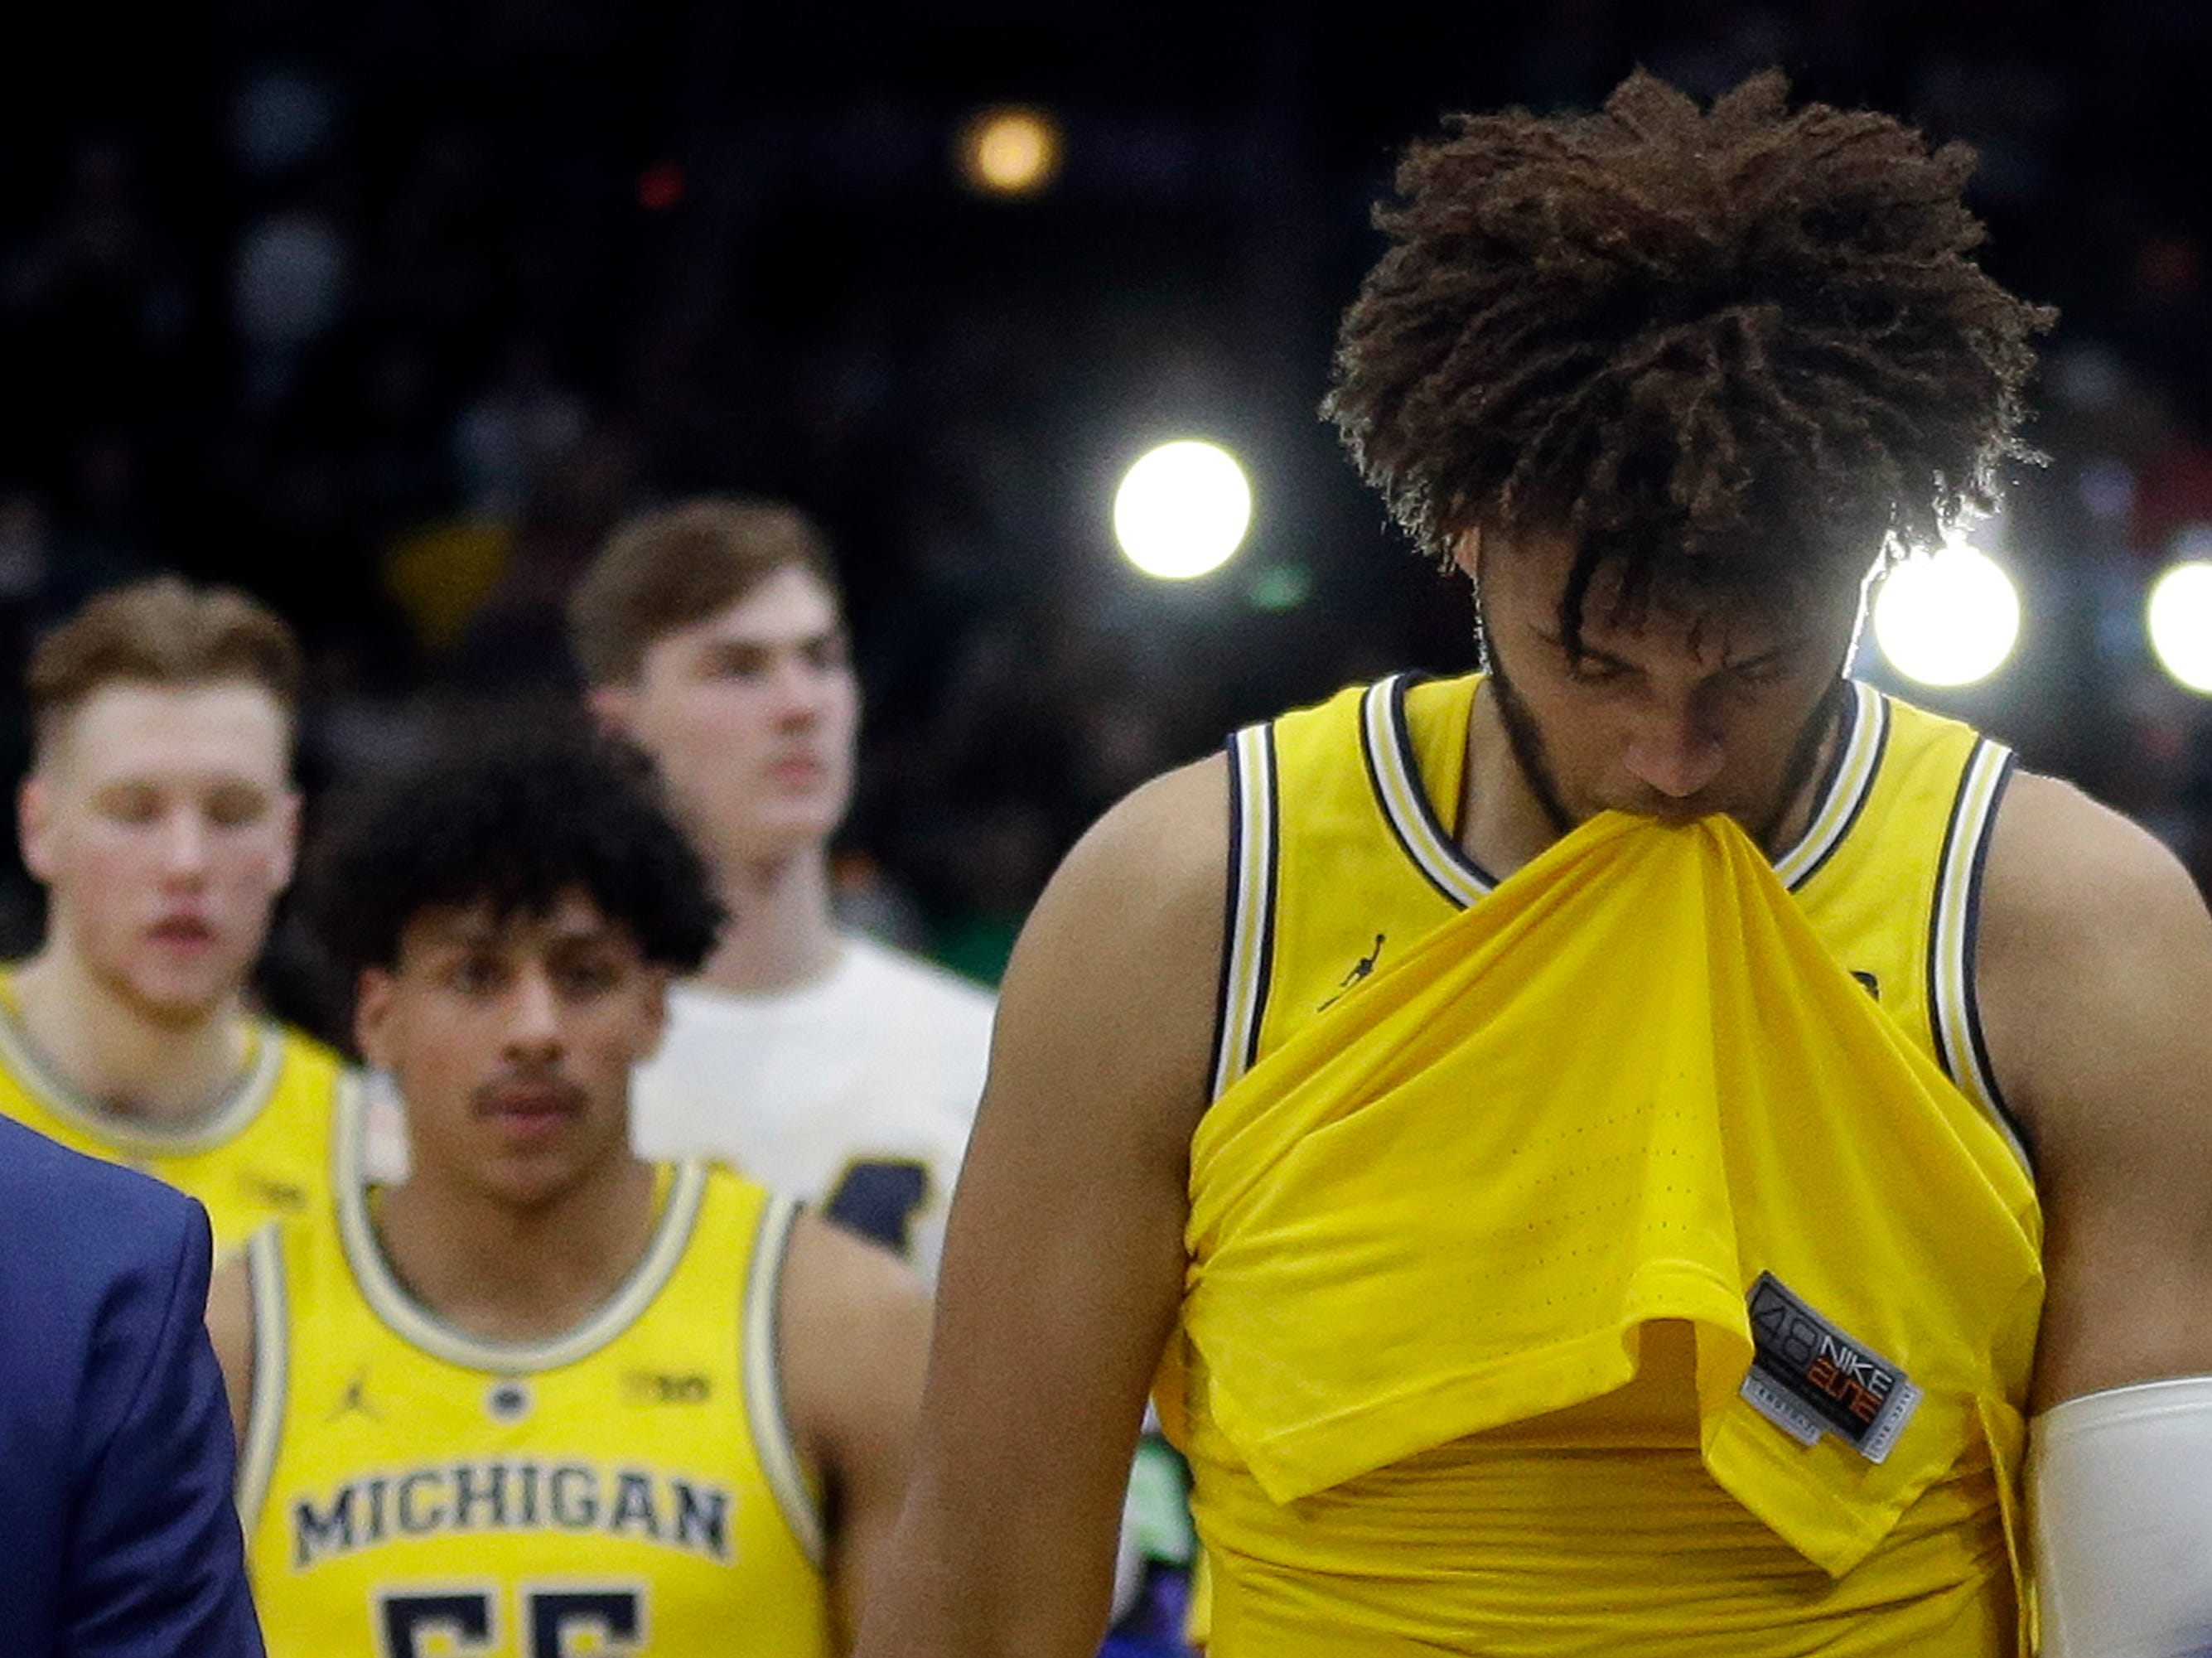 Michigan's Isaiah Livers, right looks down as he and his teammates walk off the court after the team's 65-60 loss to Michigan State.